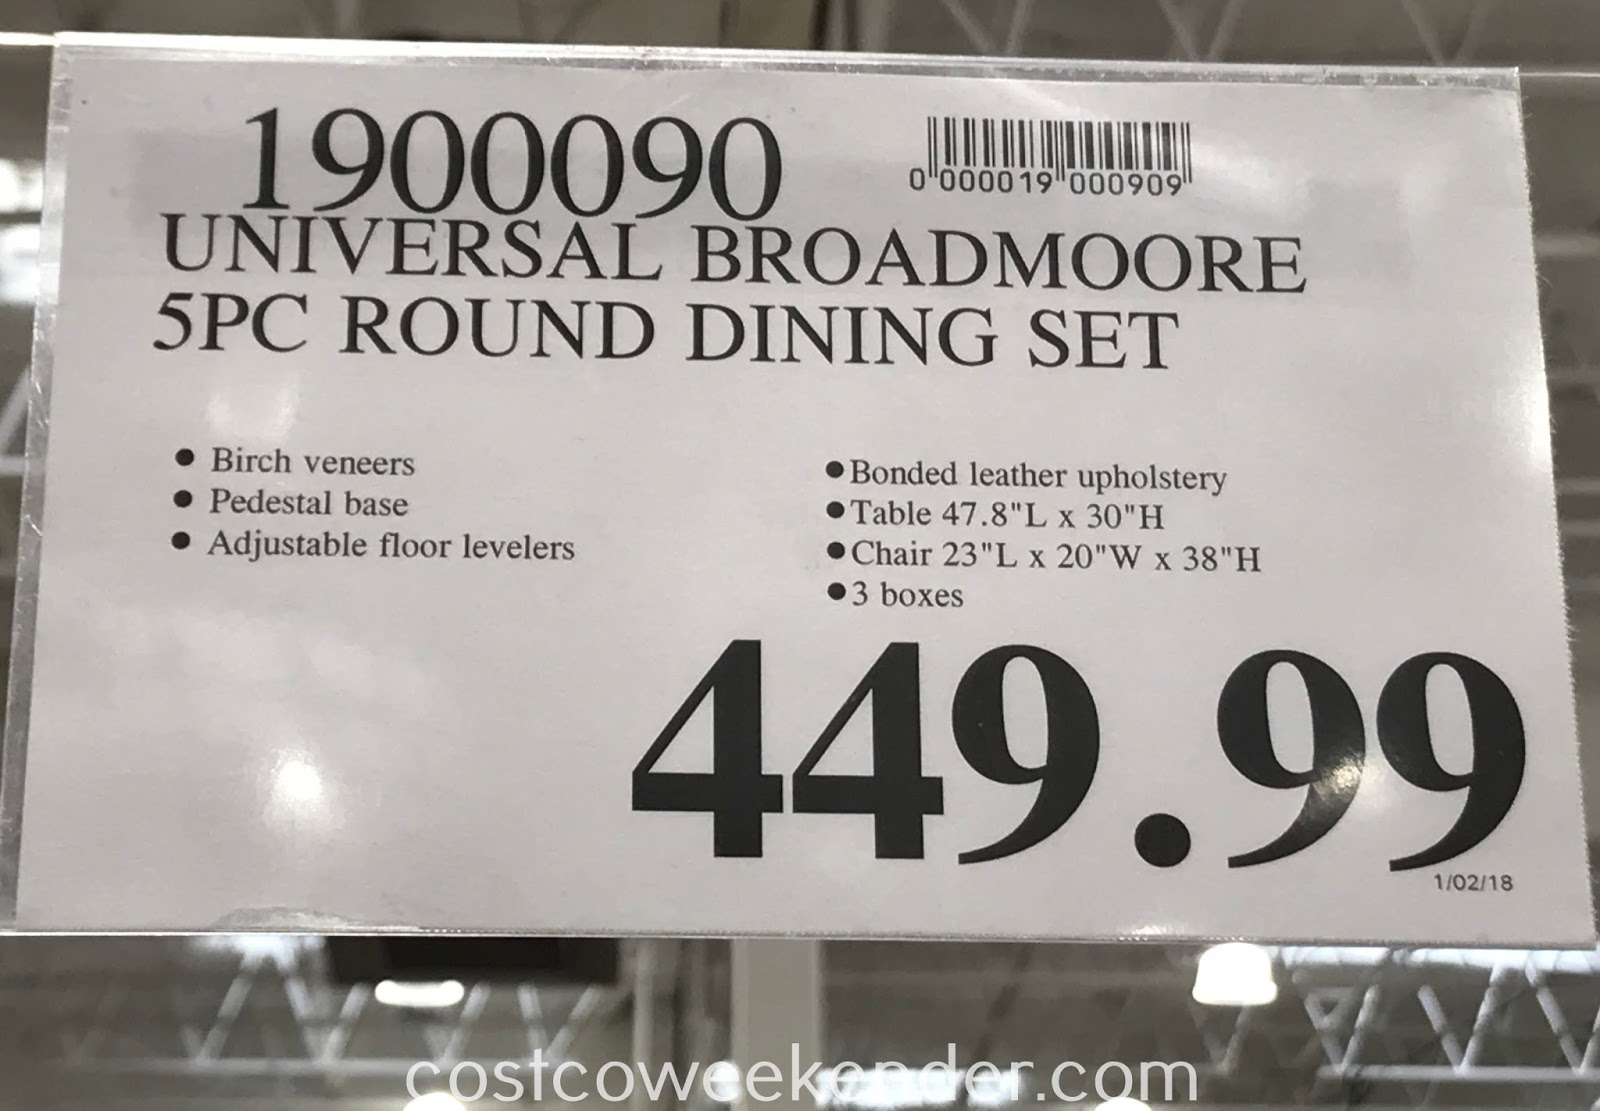 Deal for the Universal Broadmoore 5-piece Round Dining Set at Costco